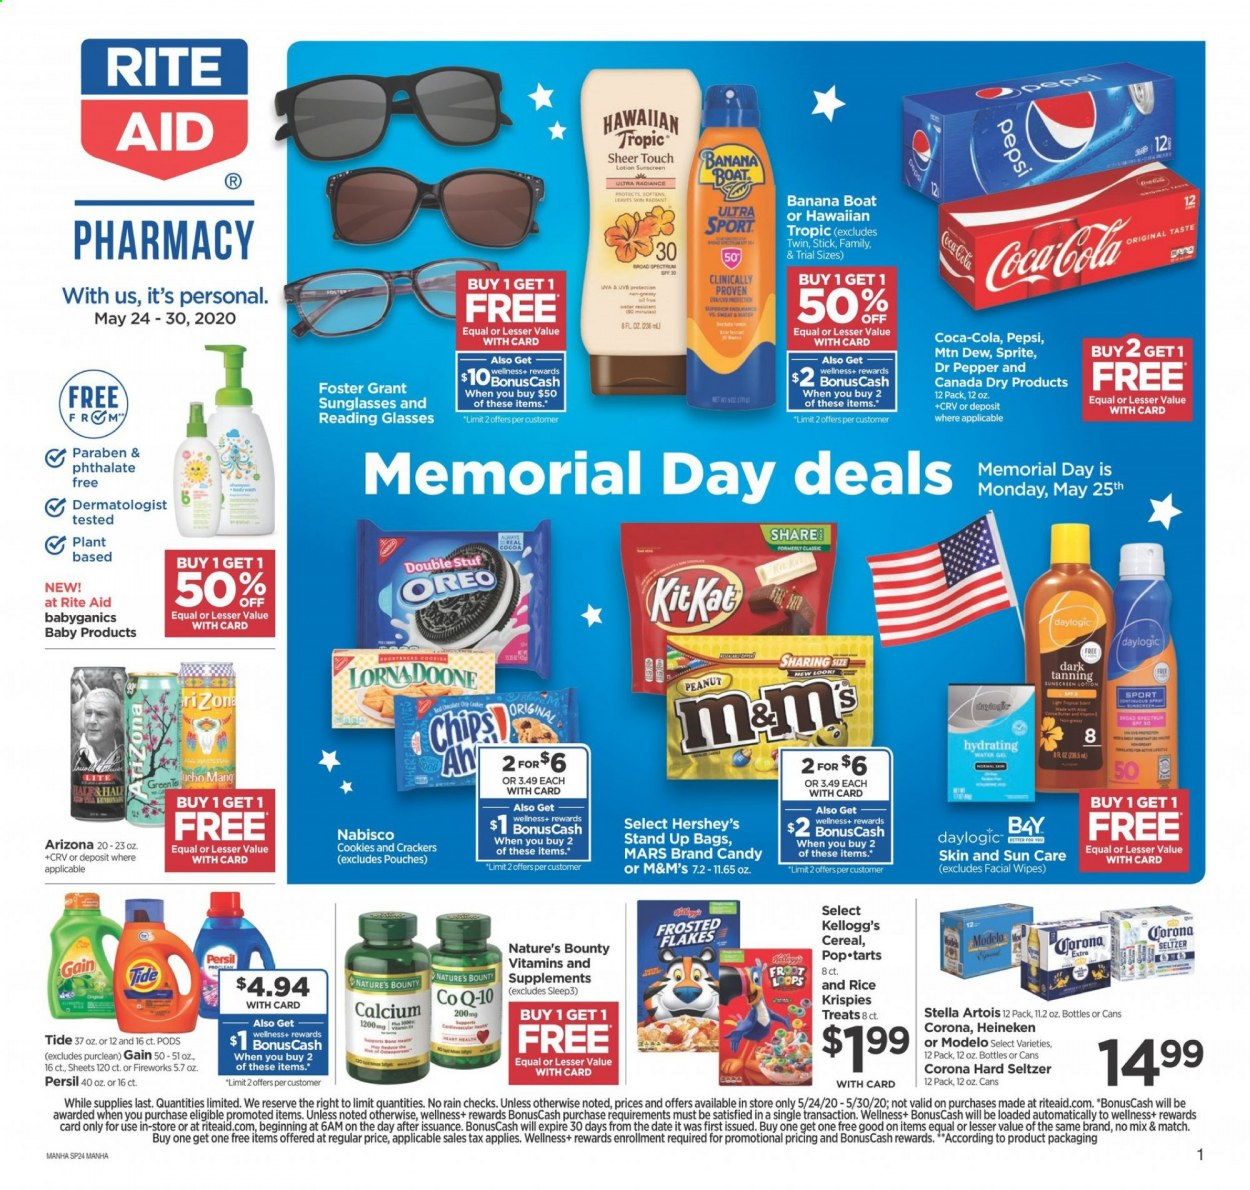 RITE AID Flyer - 05.24.2020 - 05.30.2020 - Sales products - Stella Artois, Corona, Oreo, cookies, candy, Bounty, Mars, KitKat, M&M's, crackers, chips, cocoa, cereals, pepper, peanuts, Canada Dry, Coca-Cola, Sprite, Pepsi, Dr. Pepper, seltzer, water, Gain, wipes, Tide, Persil, glass, sunglasses, calcium, Nature's Bounty. Page 1.